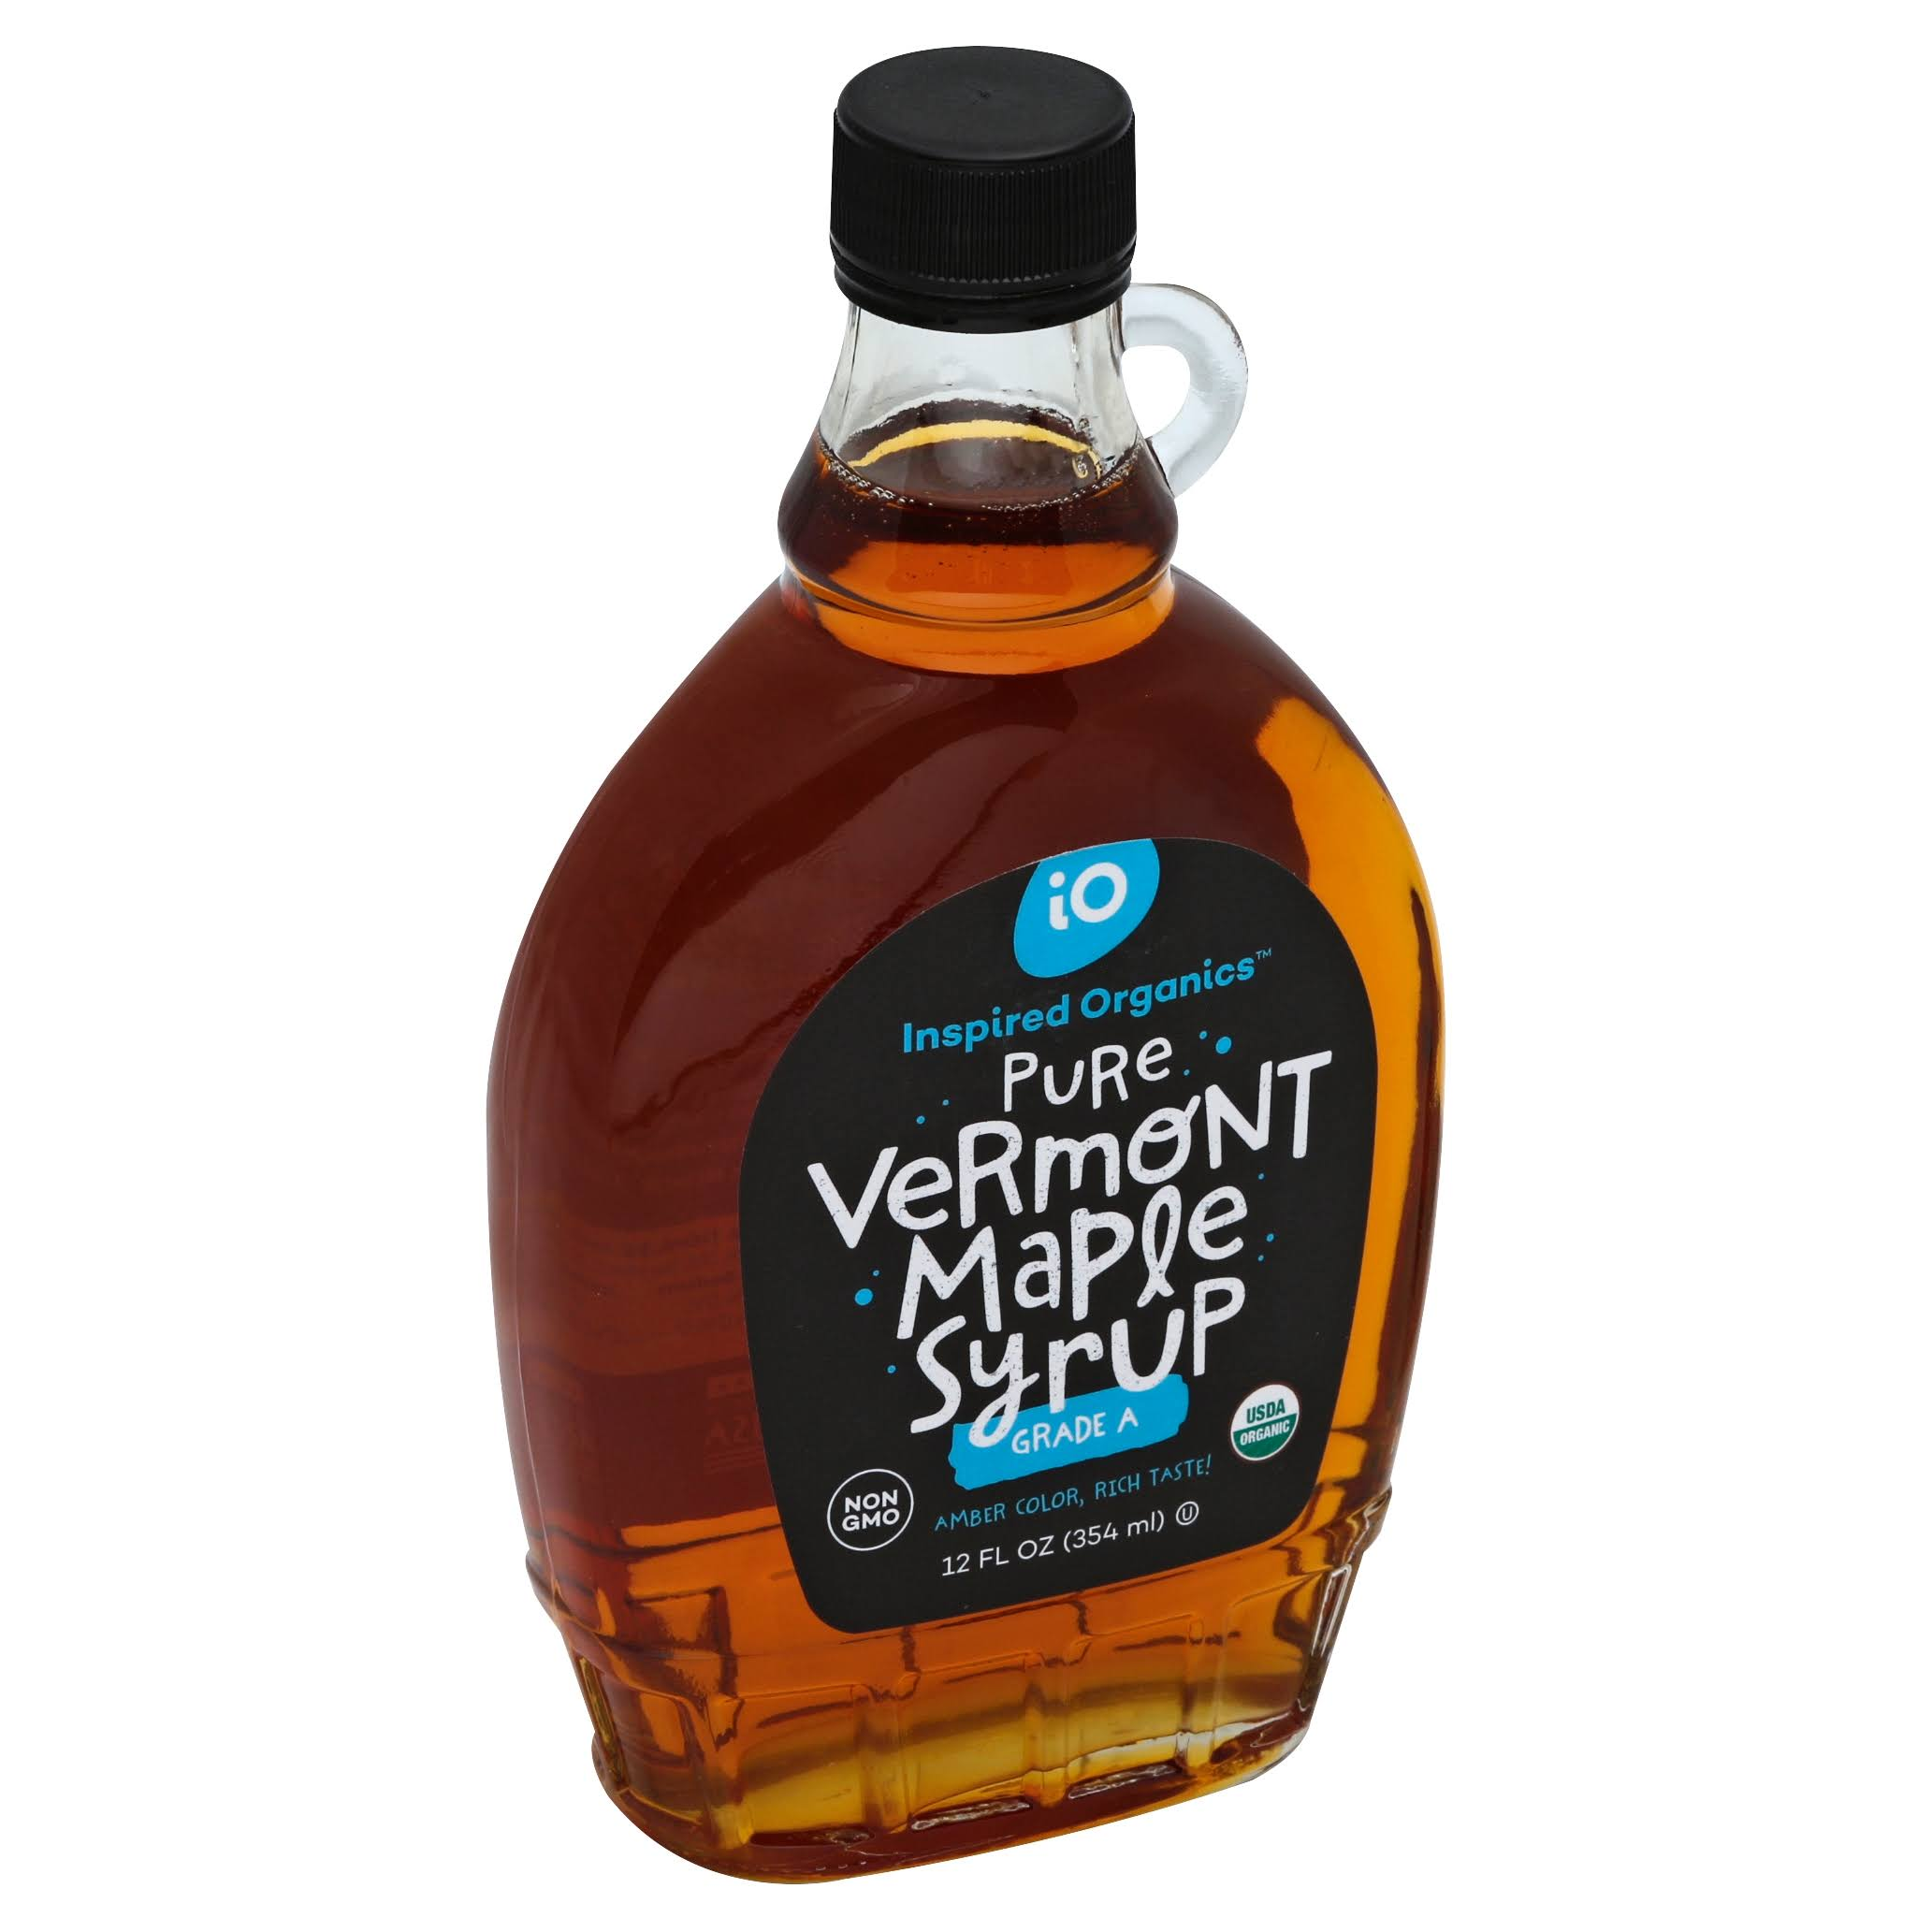 Inspired Organics Maple Syrup, Pure, Vermont - 12 oz